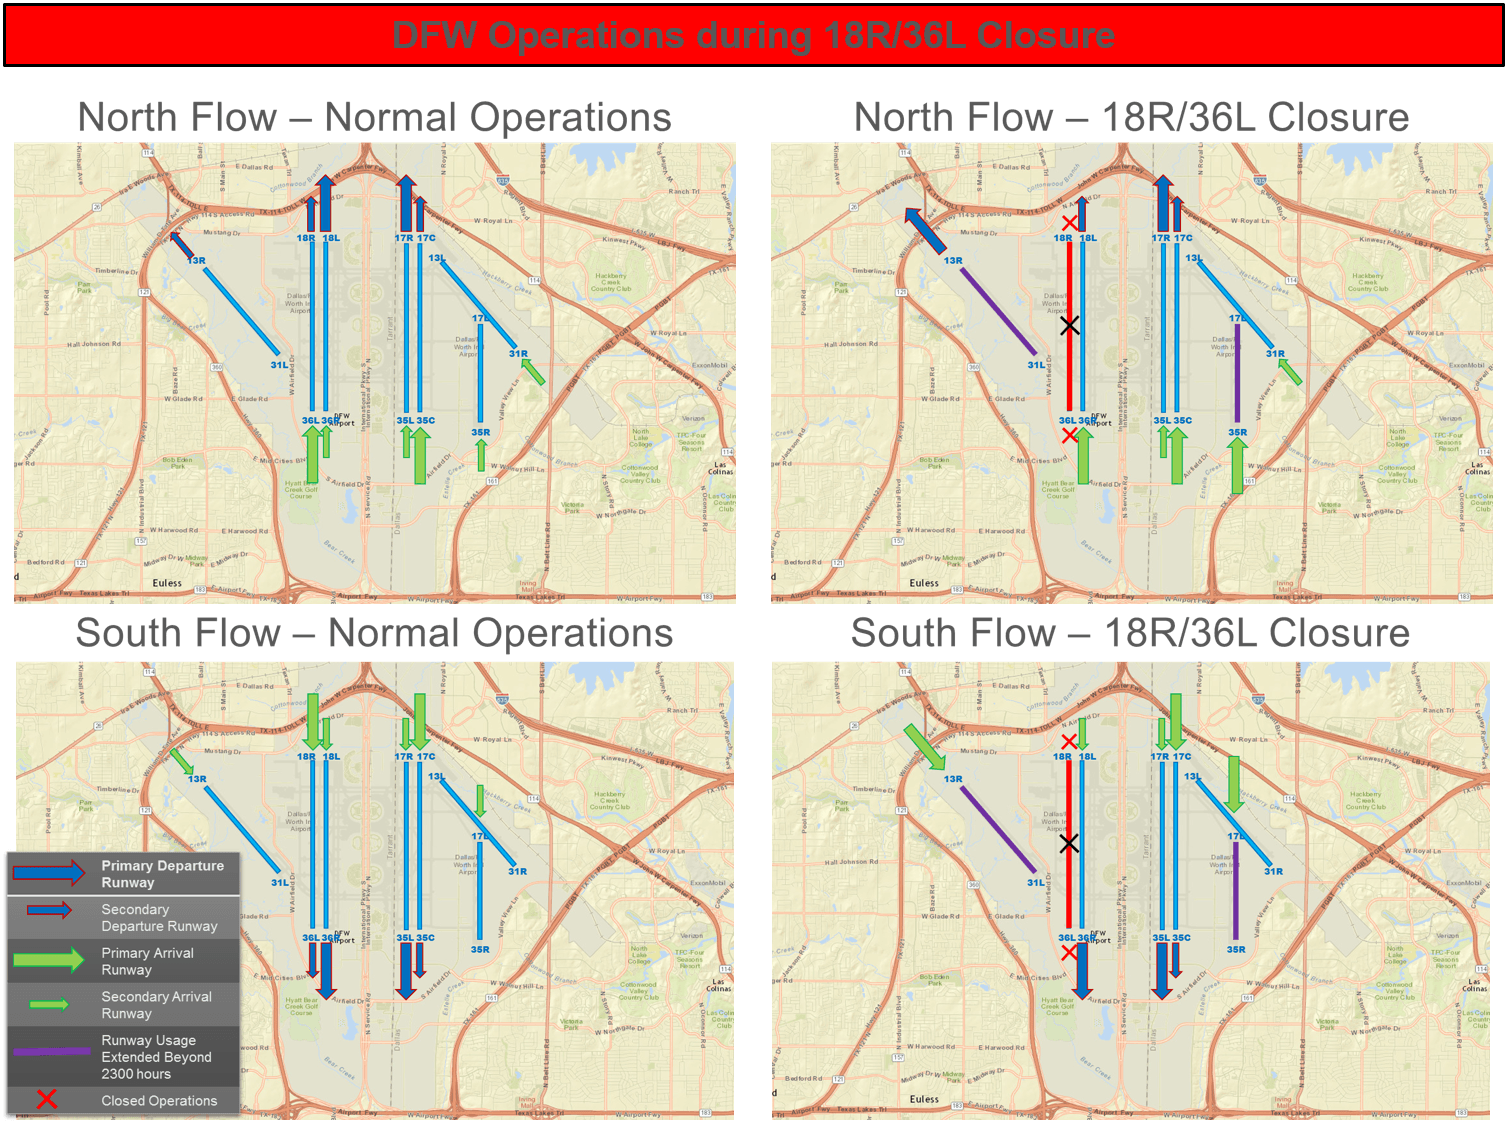 Dallas Fort Worth Operations During 18R-36L Closure